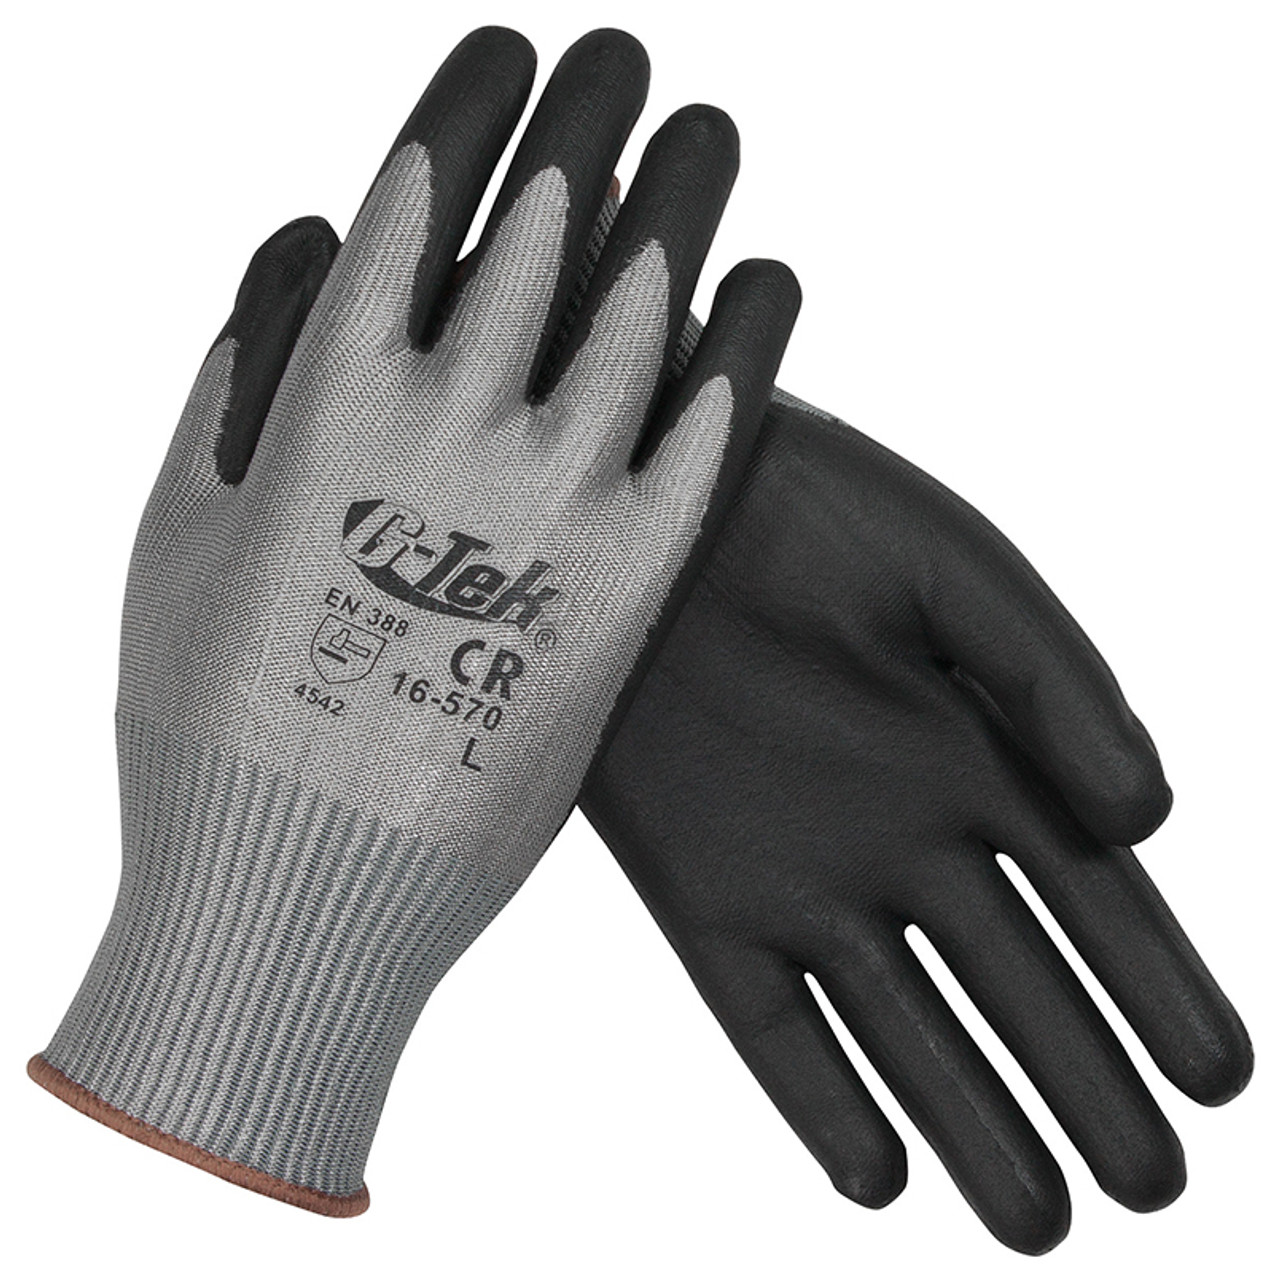 PIP 16-570 G-Tek PolyKor Seamless Knit PolyKor Blended Gloves -  Polyurethane Coated Smooth Grip on Palm & Fingers